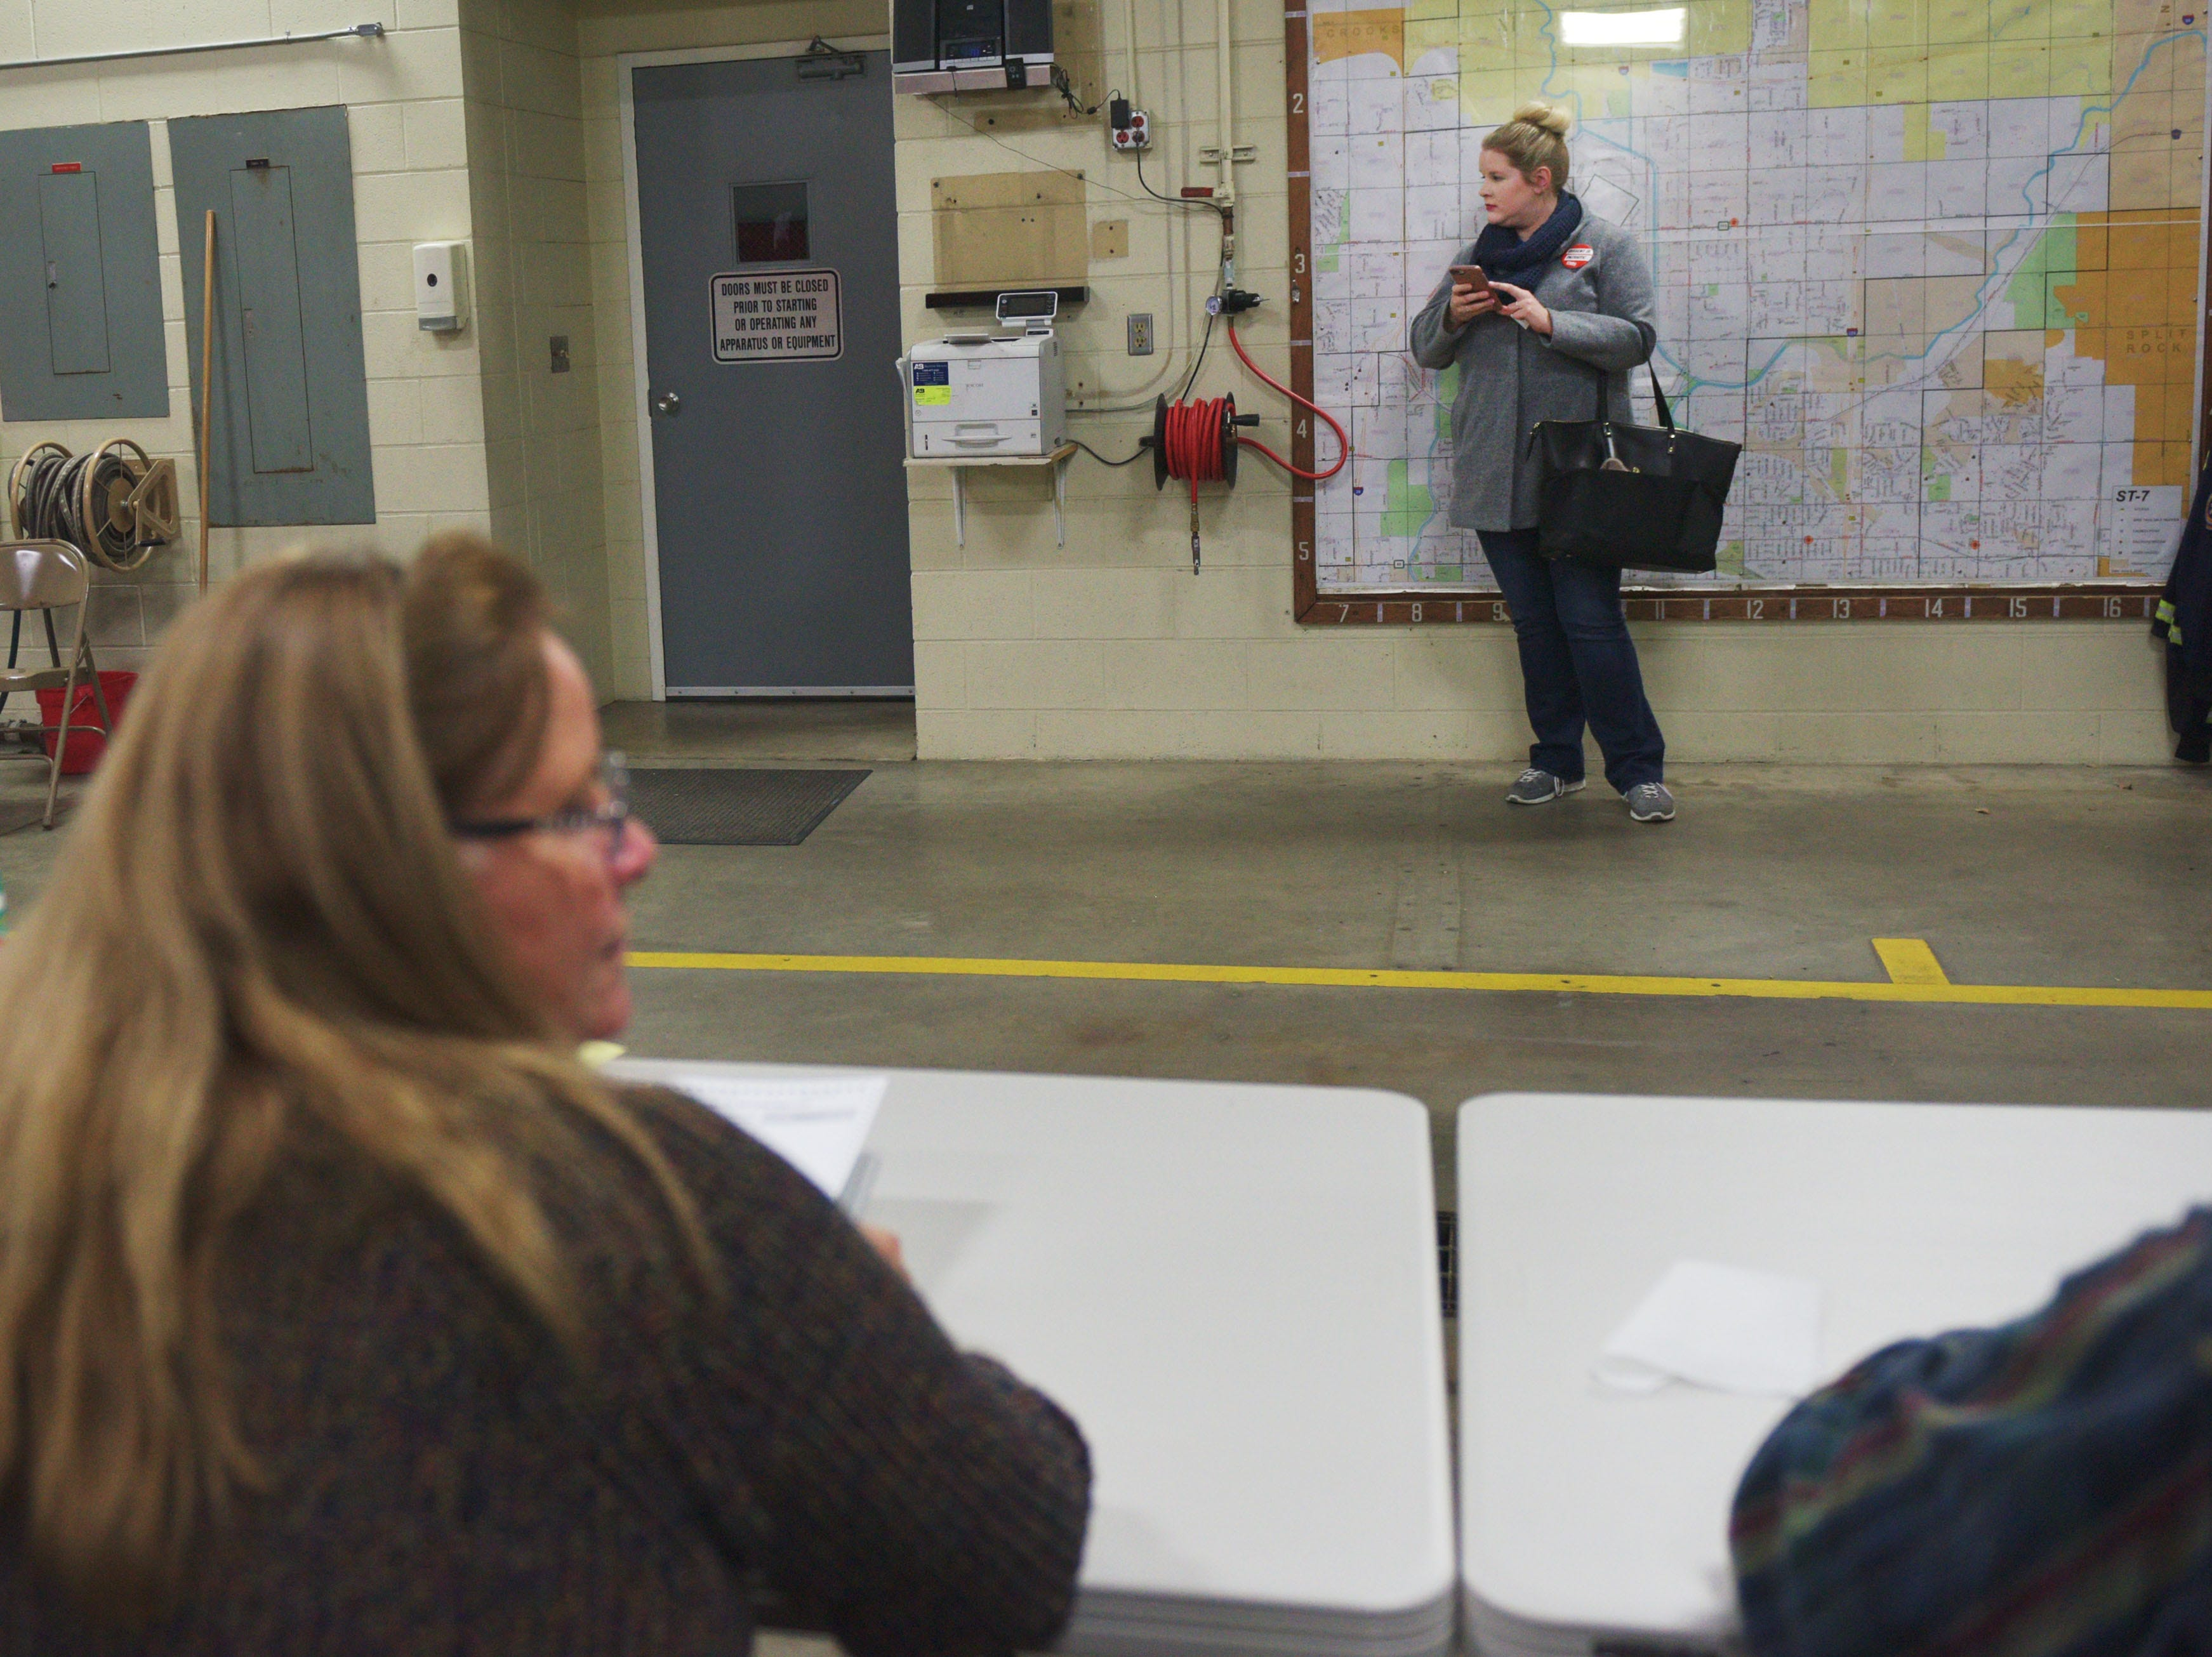 Kristen Wichern stands aside after she votes while waiting for her husband, Douglas, in the 2018 midterm elections Tuesday, Nov. 6, at Fire Station #7 in Sioux Falls.